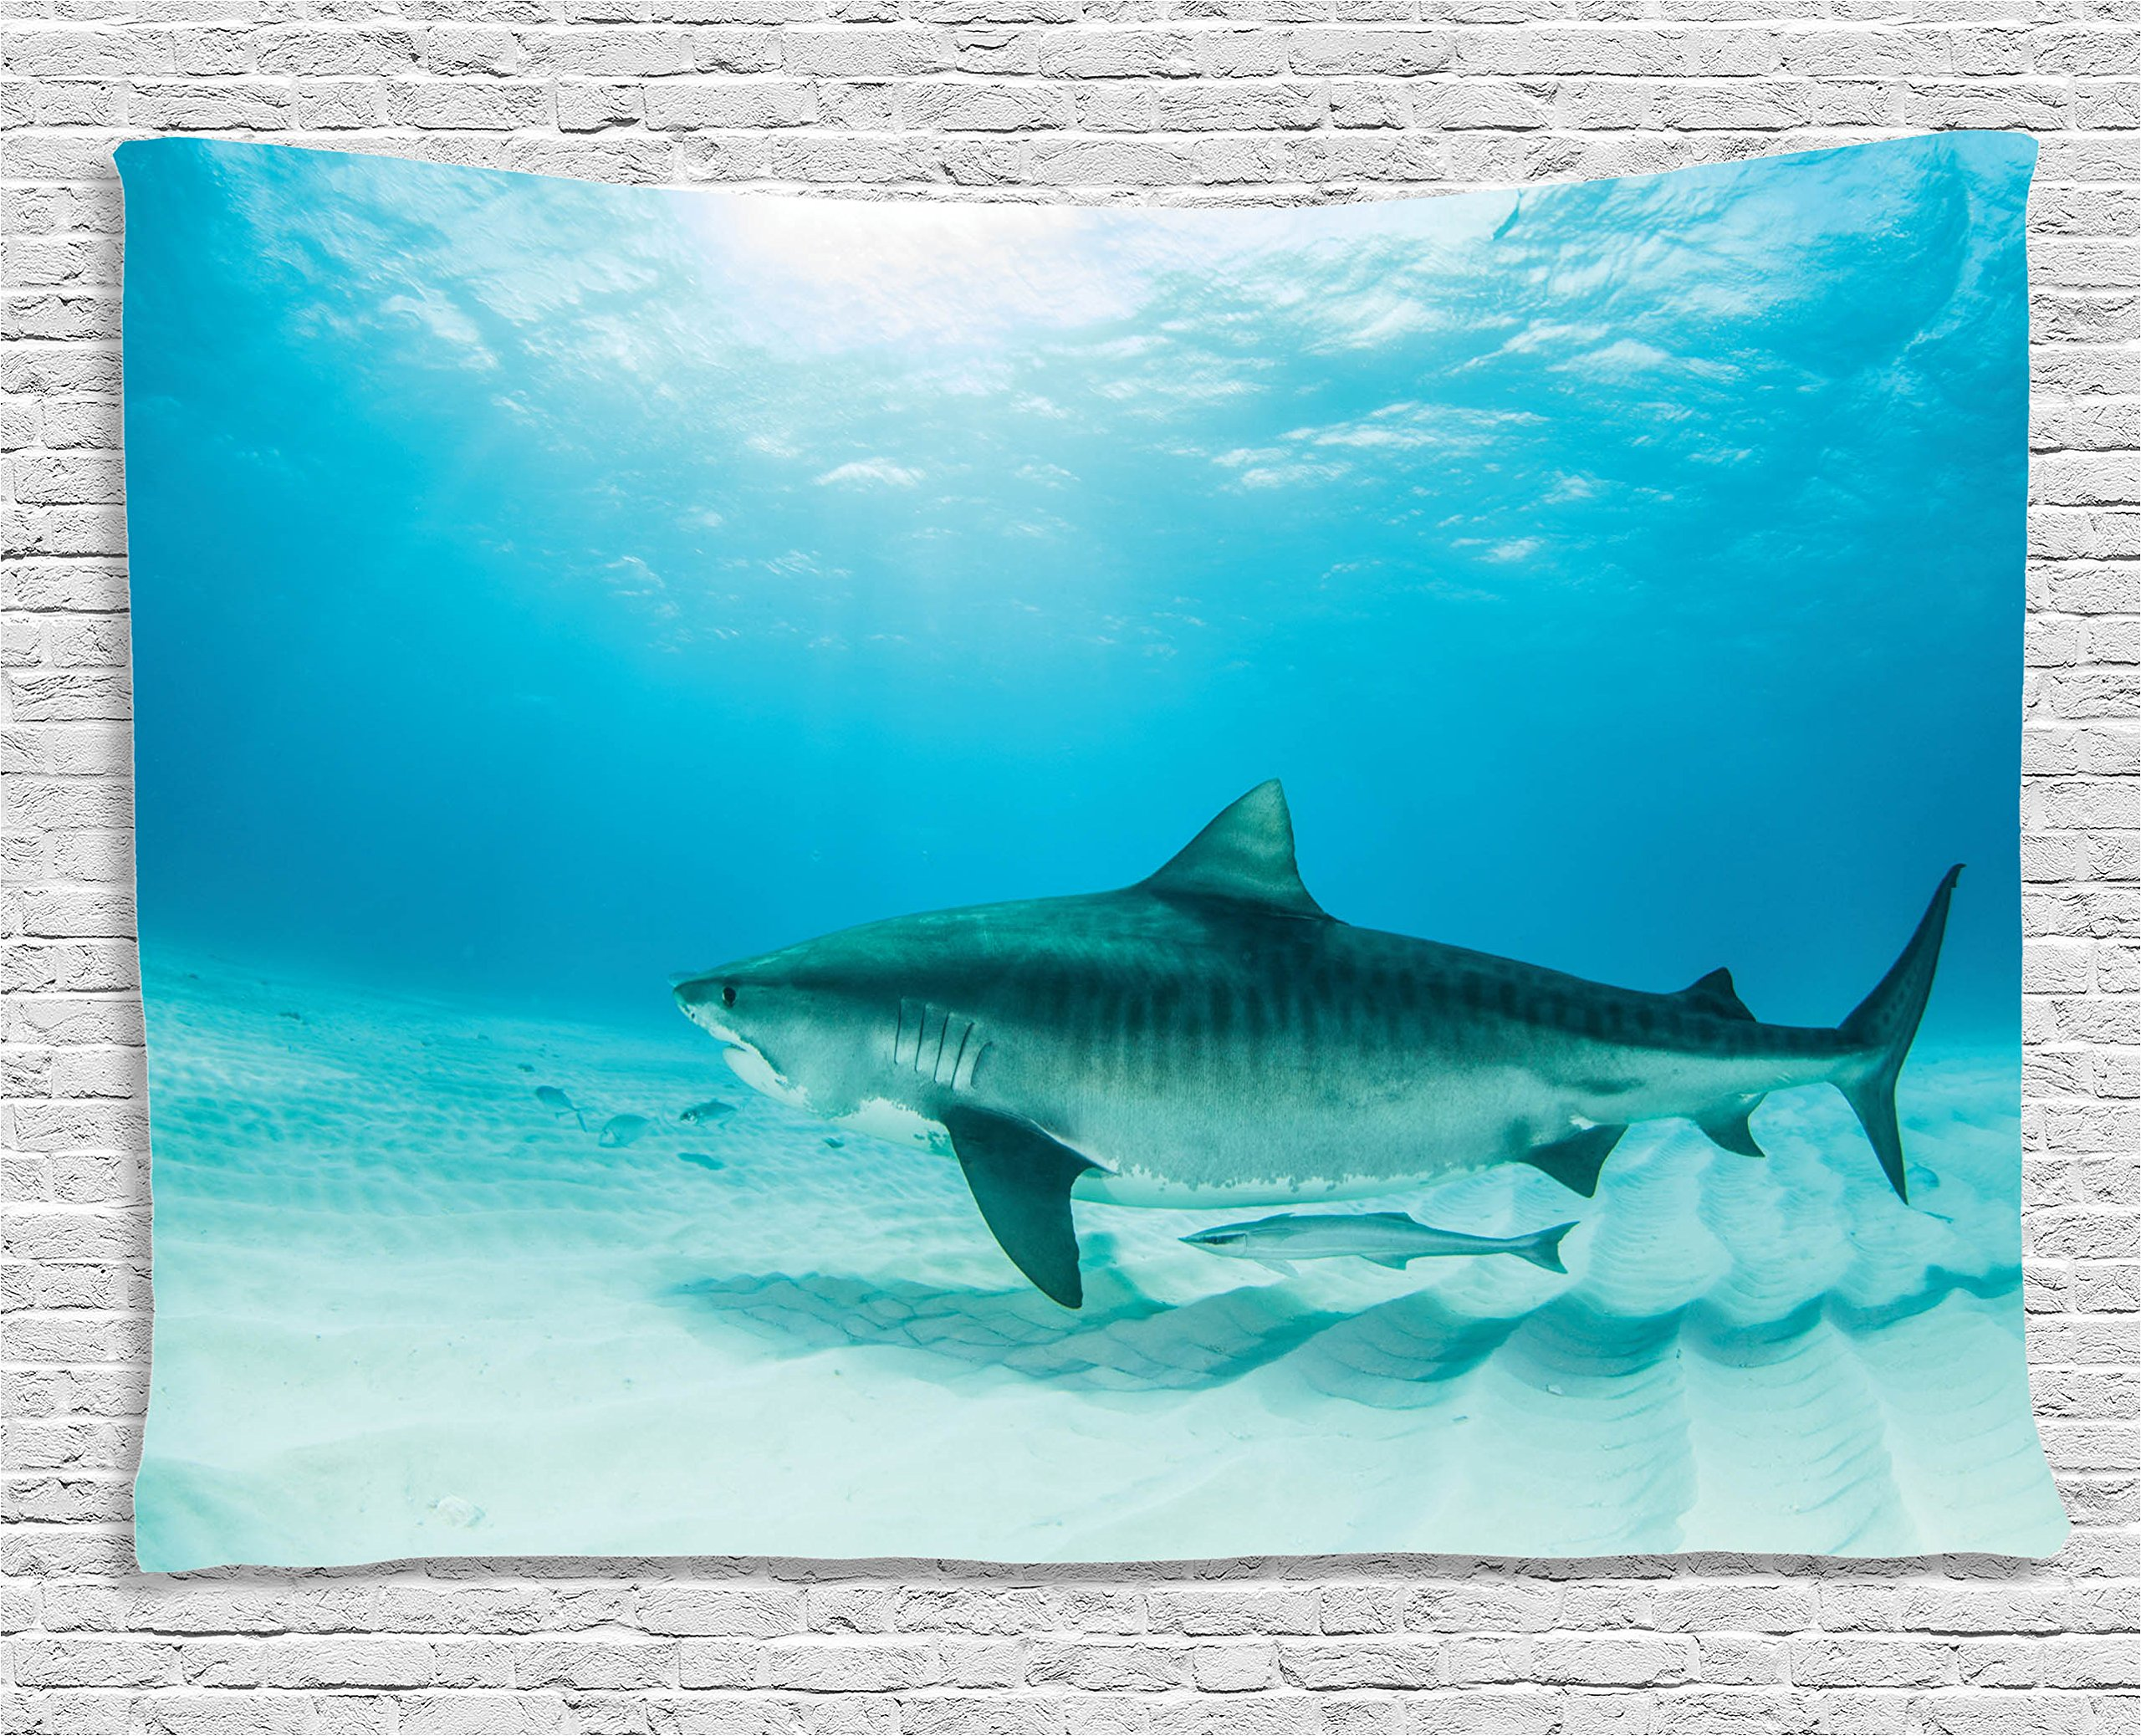 Ambesonne Sea Animal Decor Tapestry by, Tiger Shark on the Bottom of Water Danger Icon Wild Life Jaws Symbol Image, Wall Hanging for Bedroom Living Room Dorm, 80WX60L Inches, Turquoise